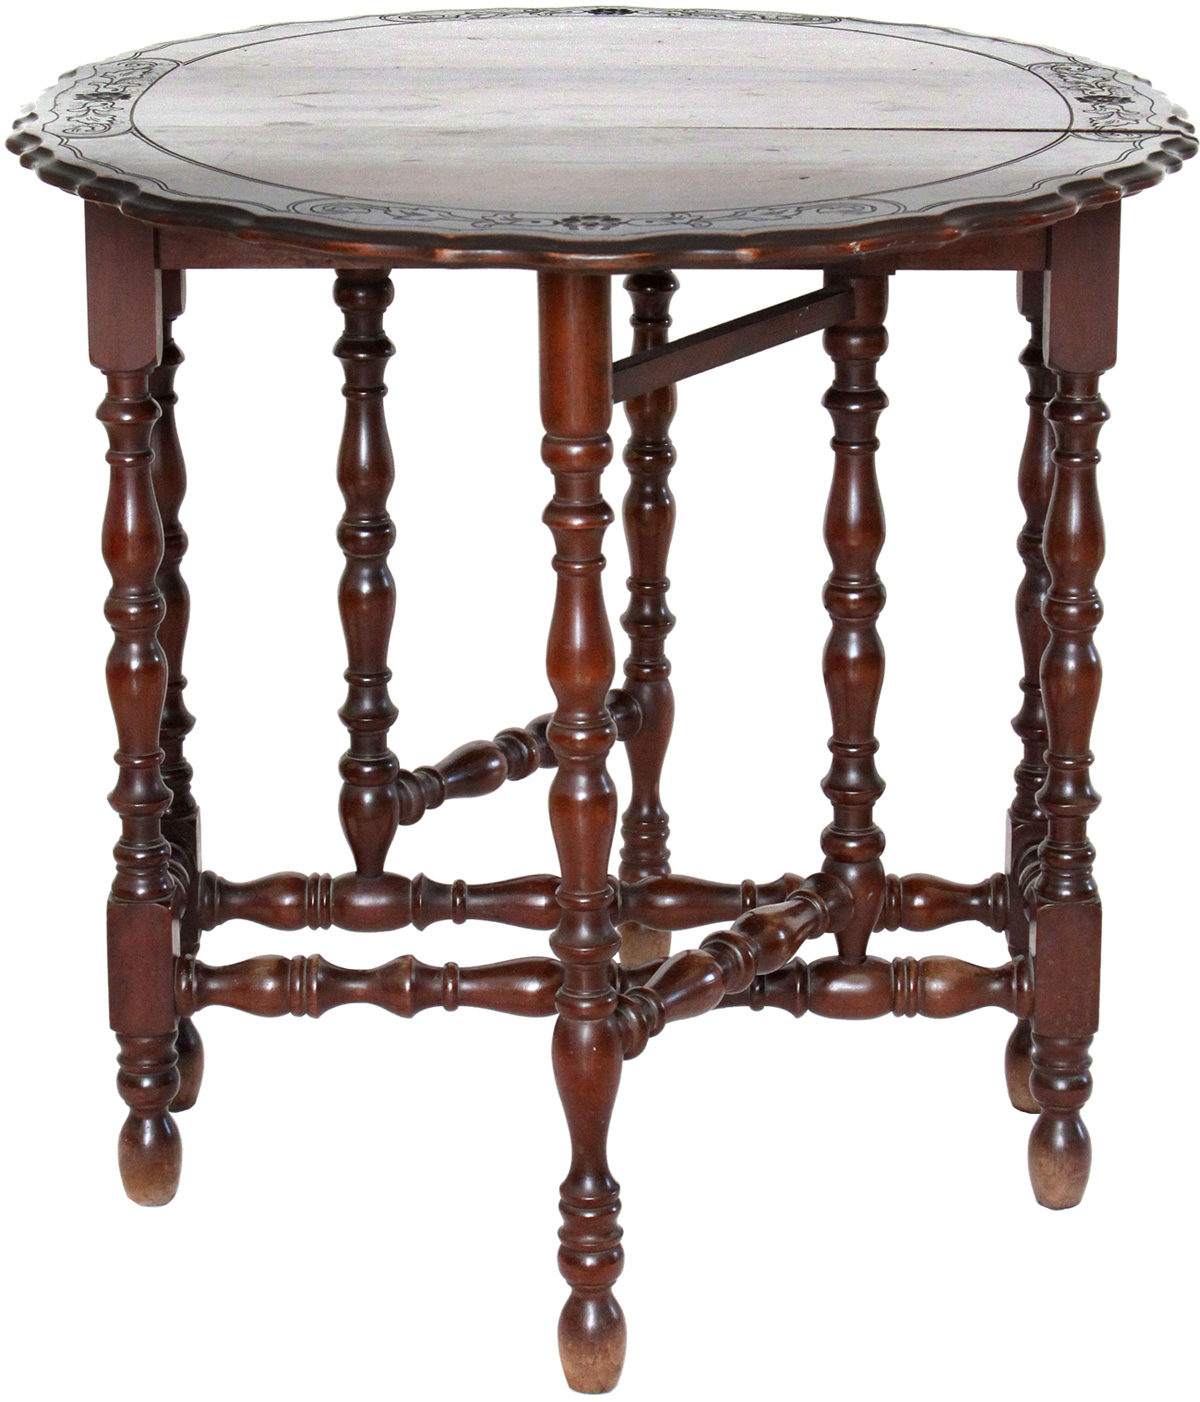 Victorian furniture table - Antique Victorian Gate Leg Table